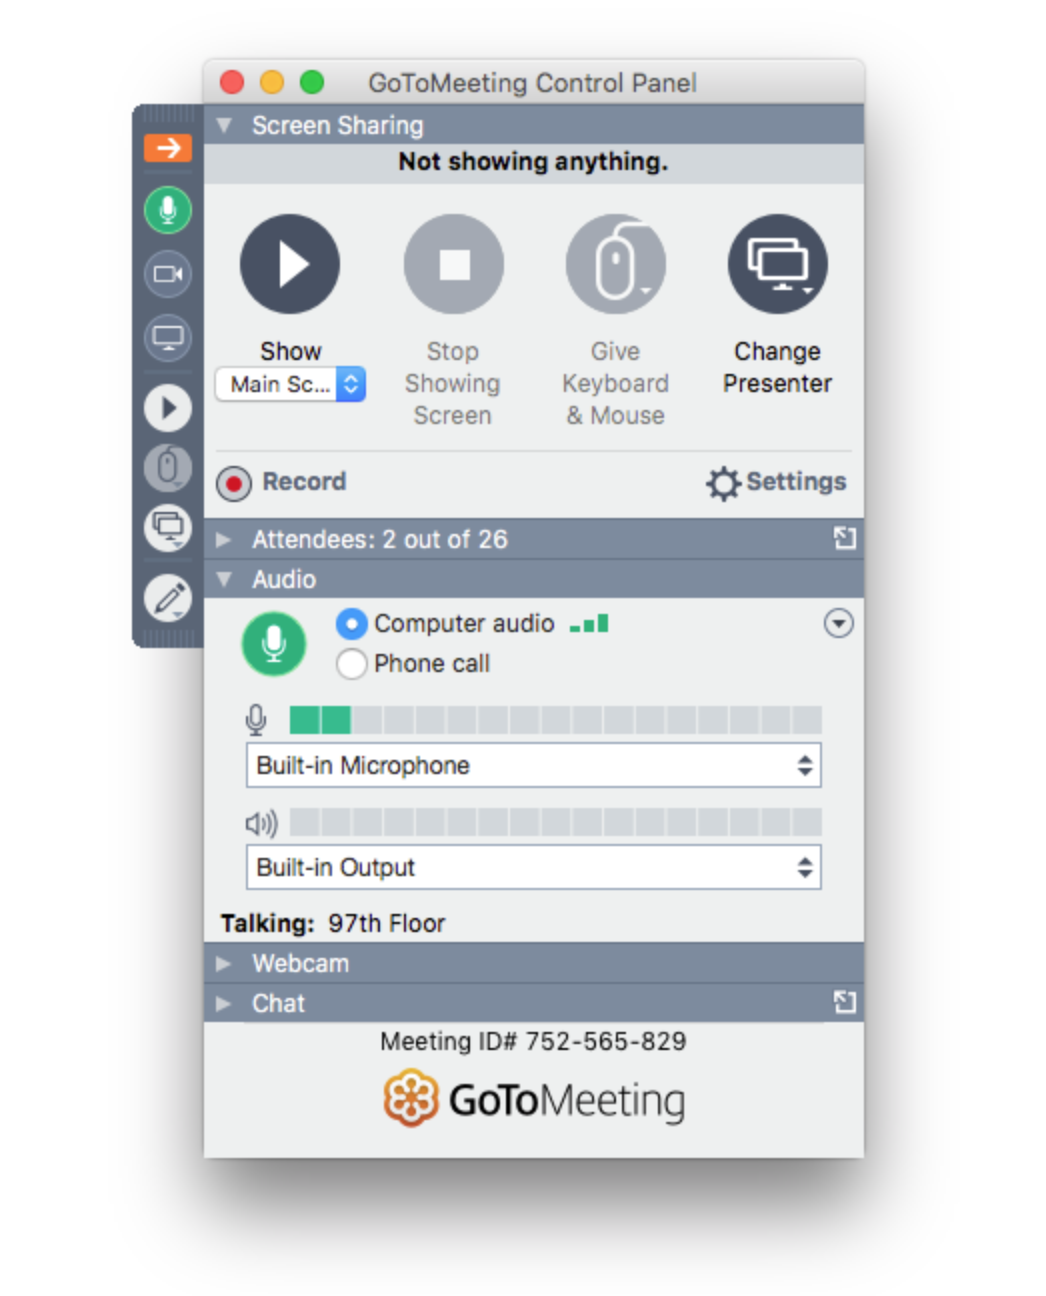 The GoToMeeting control panel